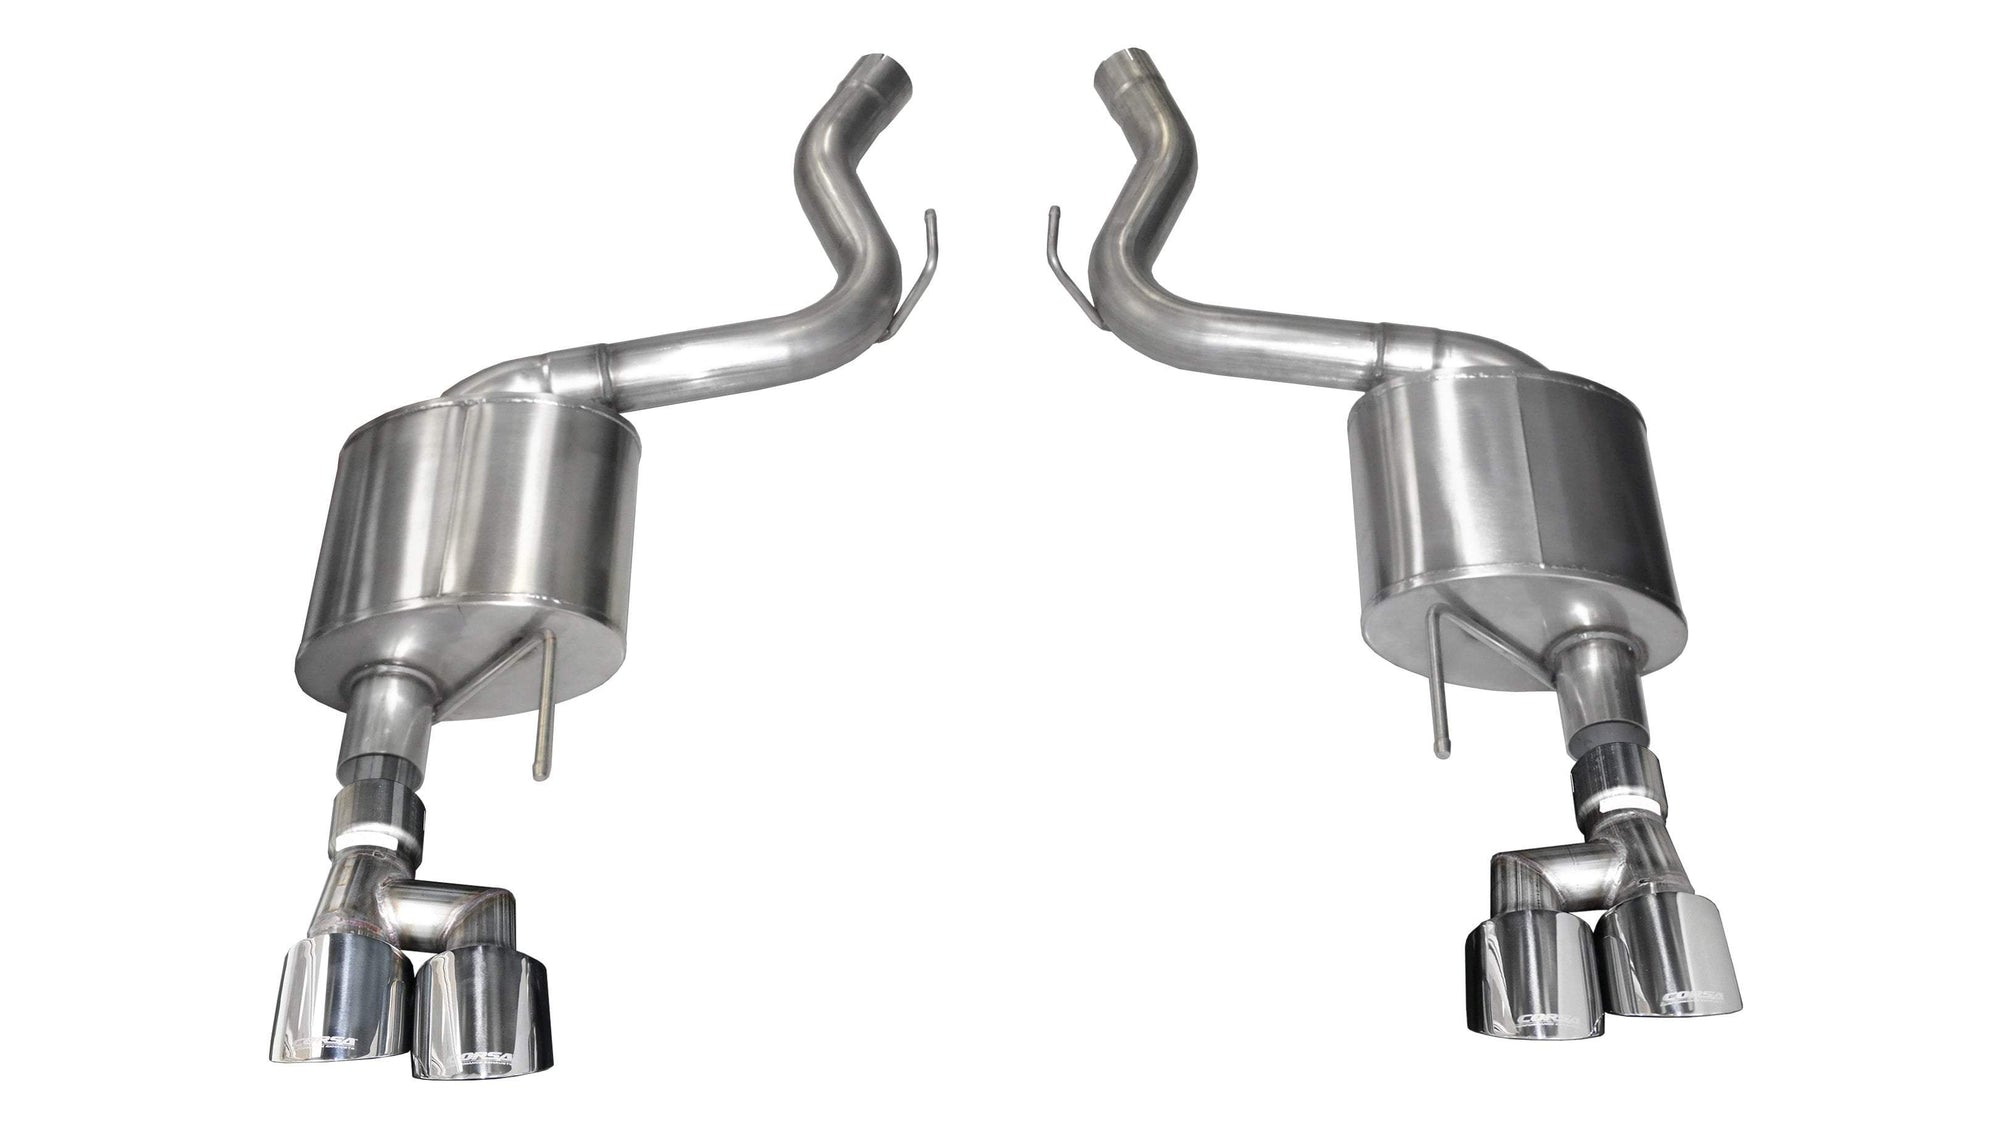 "CORSA PERFORMANCE Axle-Back Exhaust Polished / Sport / Dual Rear - Twin 4.0in 2018-2019 Ford Mustang GT, 5.0L V8, 3.0"" Axle-Back Exhaust System with Twin 4.0"" Tips (21039) Sport Sound Level"